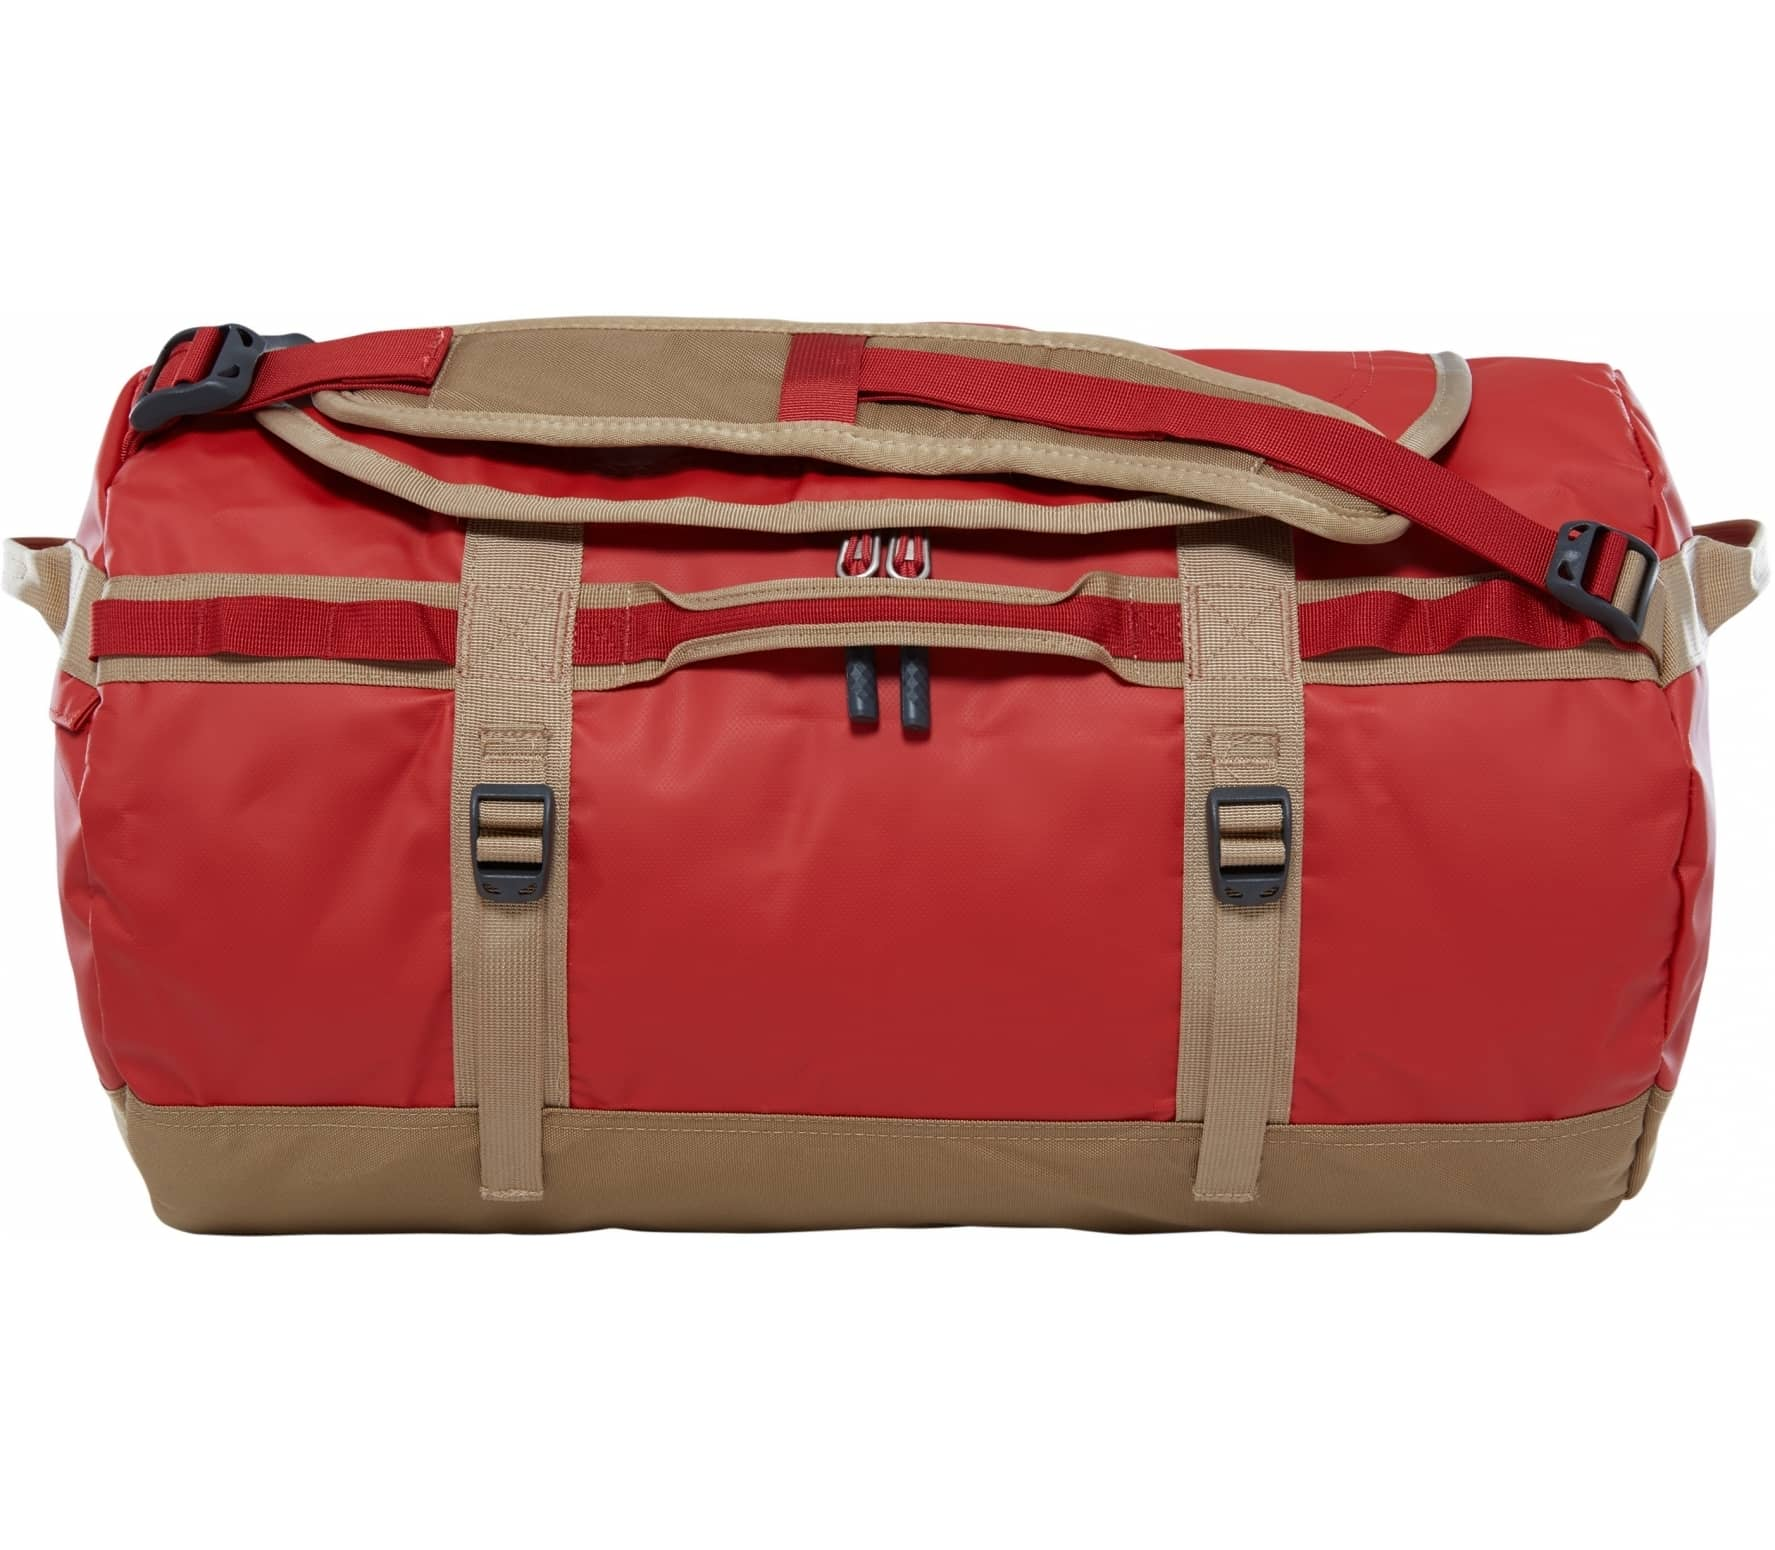 The North Face - Base Camp S duffel bag (dark red/beige) thumbnail